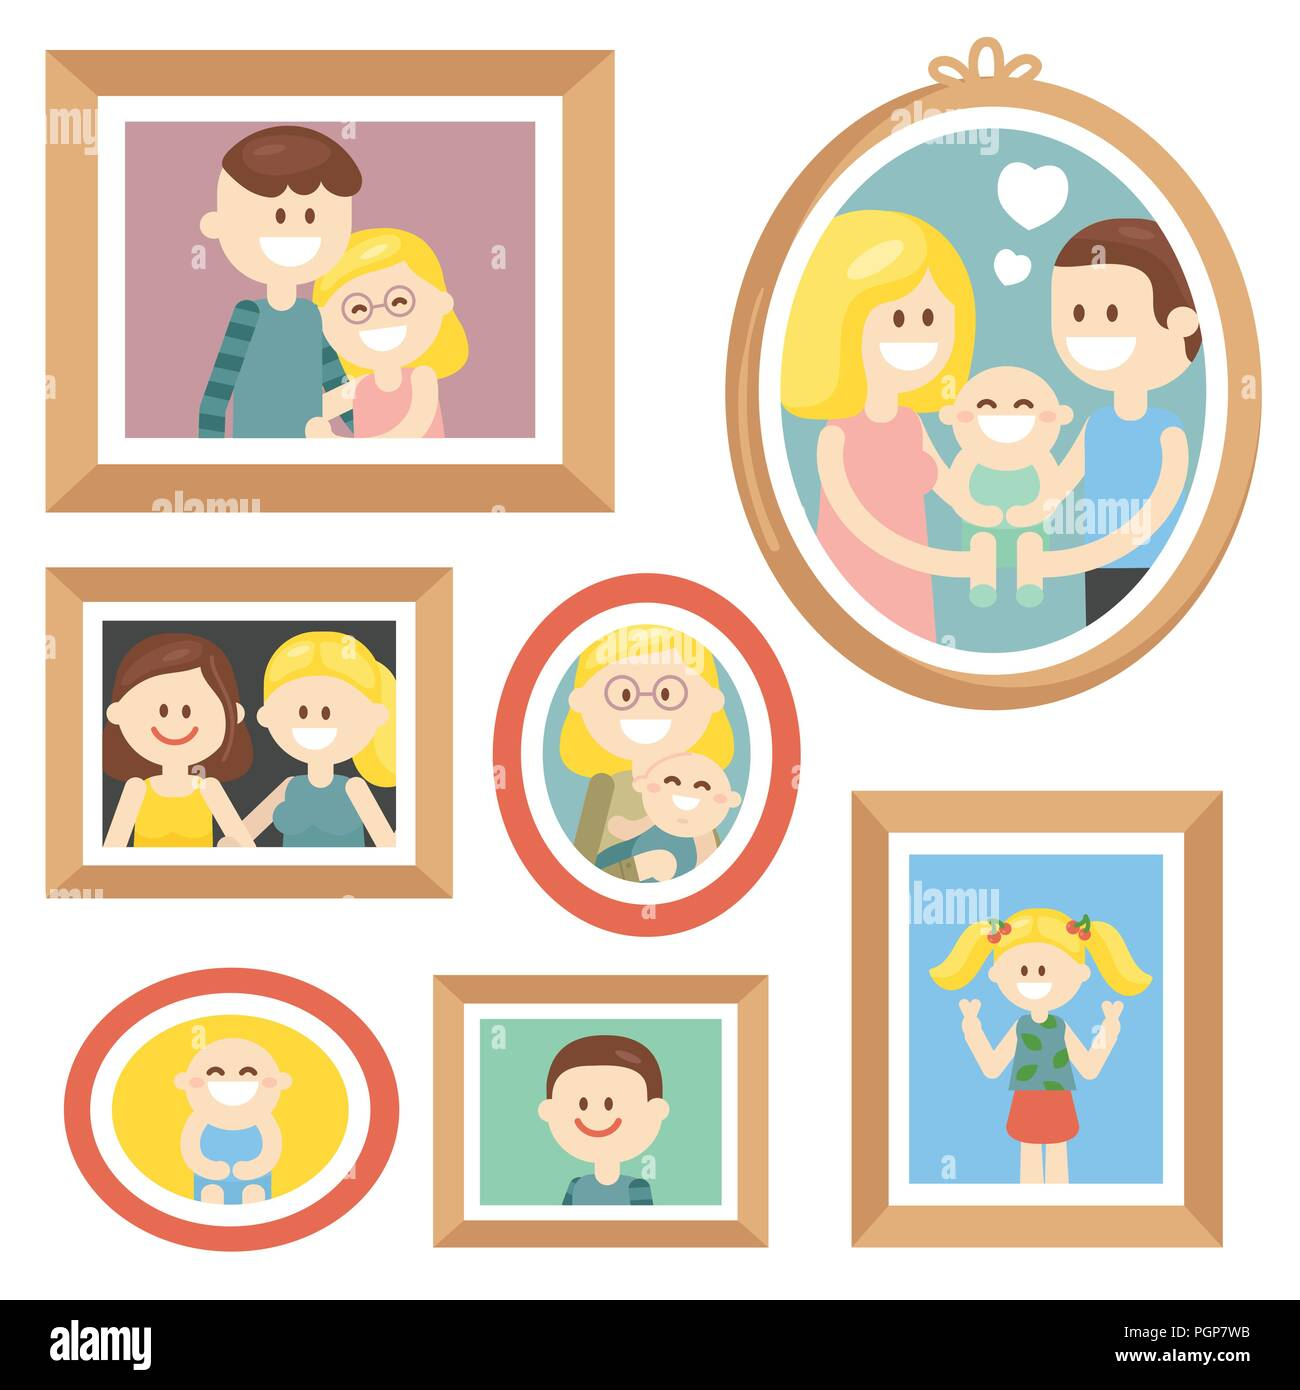 Collection of cartoon family photos in frame - Stock Image